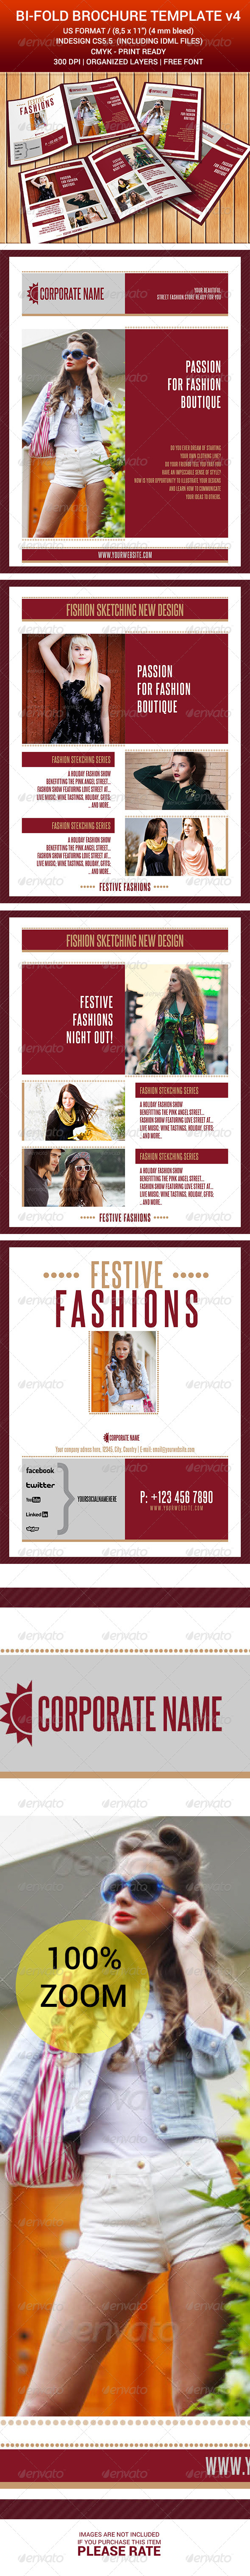 Bi-Fold Brochure Indesign Template v4